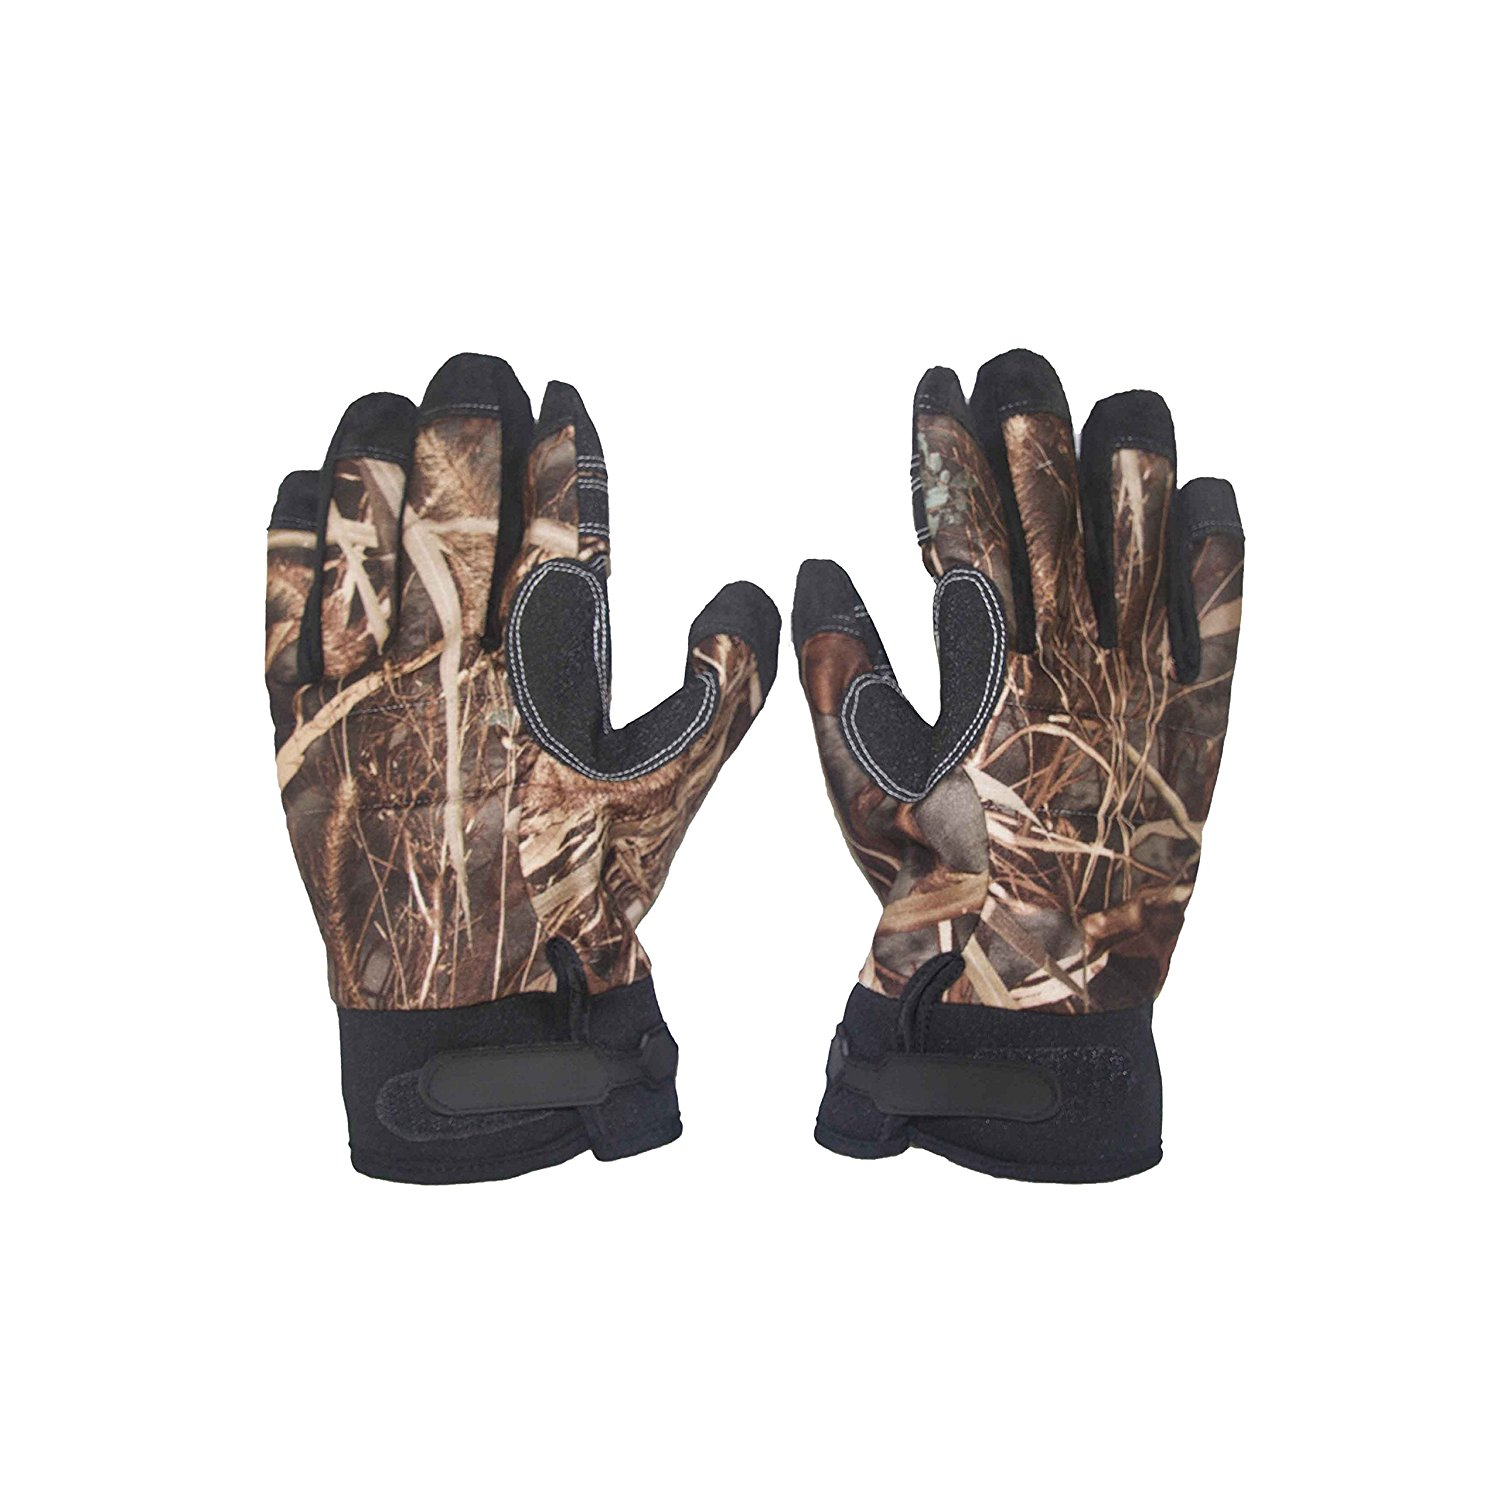 Wildtree snow X-Large NEW Wildfowler Outfitter Waterproof Hunting Gloves